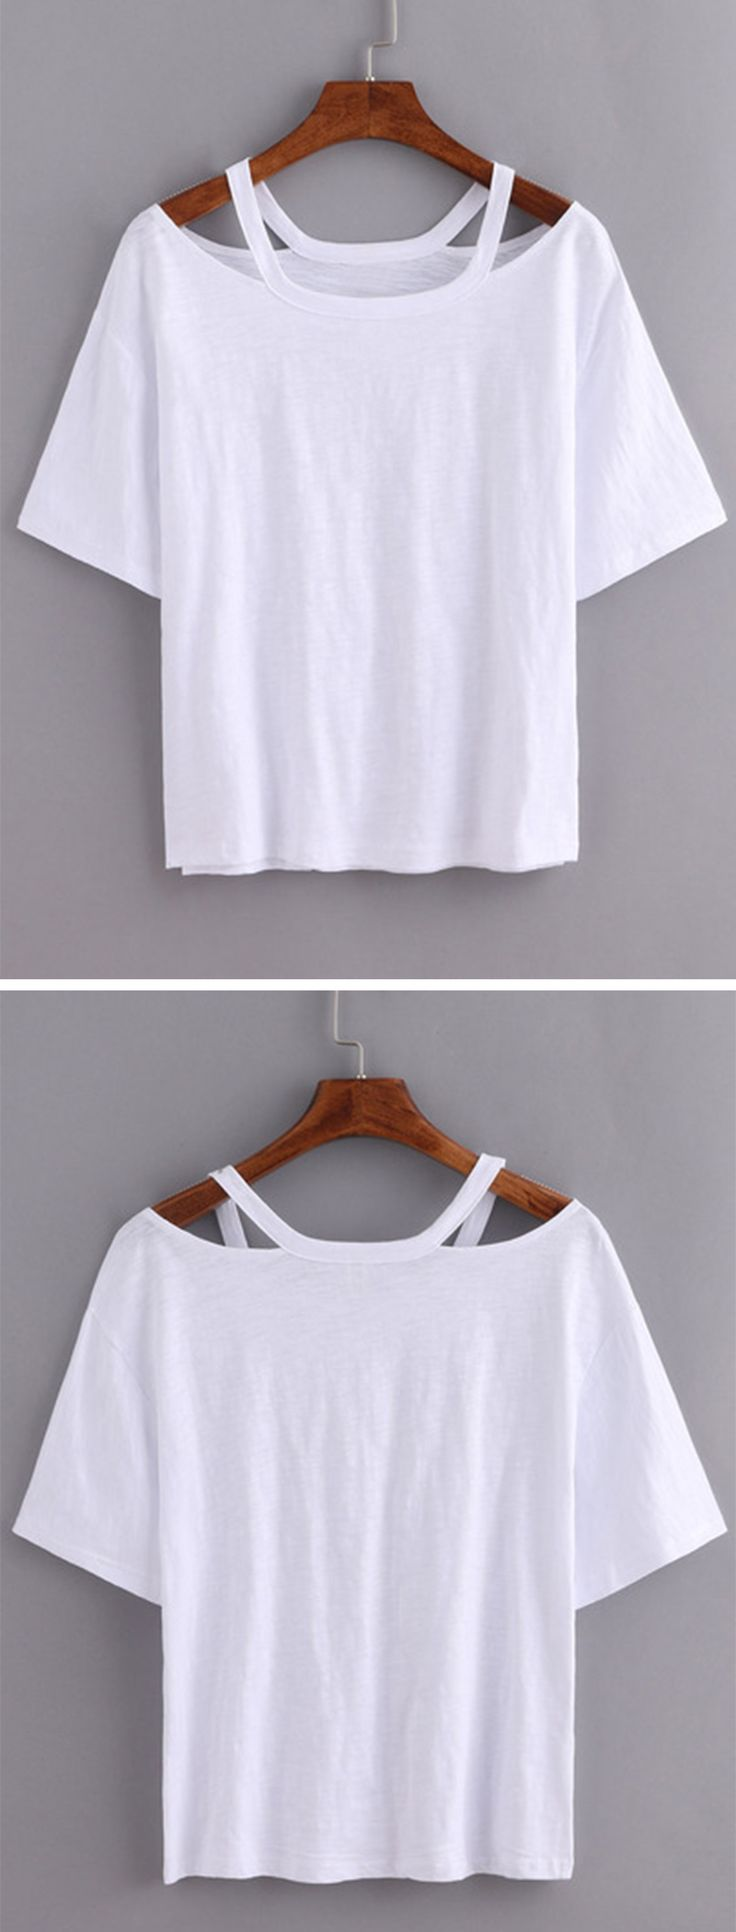 diy clothes cutout loose fit white t shirt with - T Shirt Cutting Designs Ideas